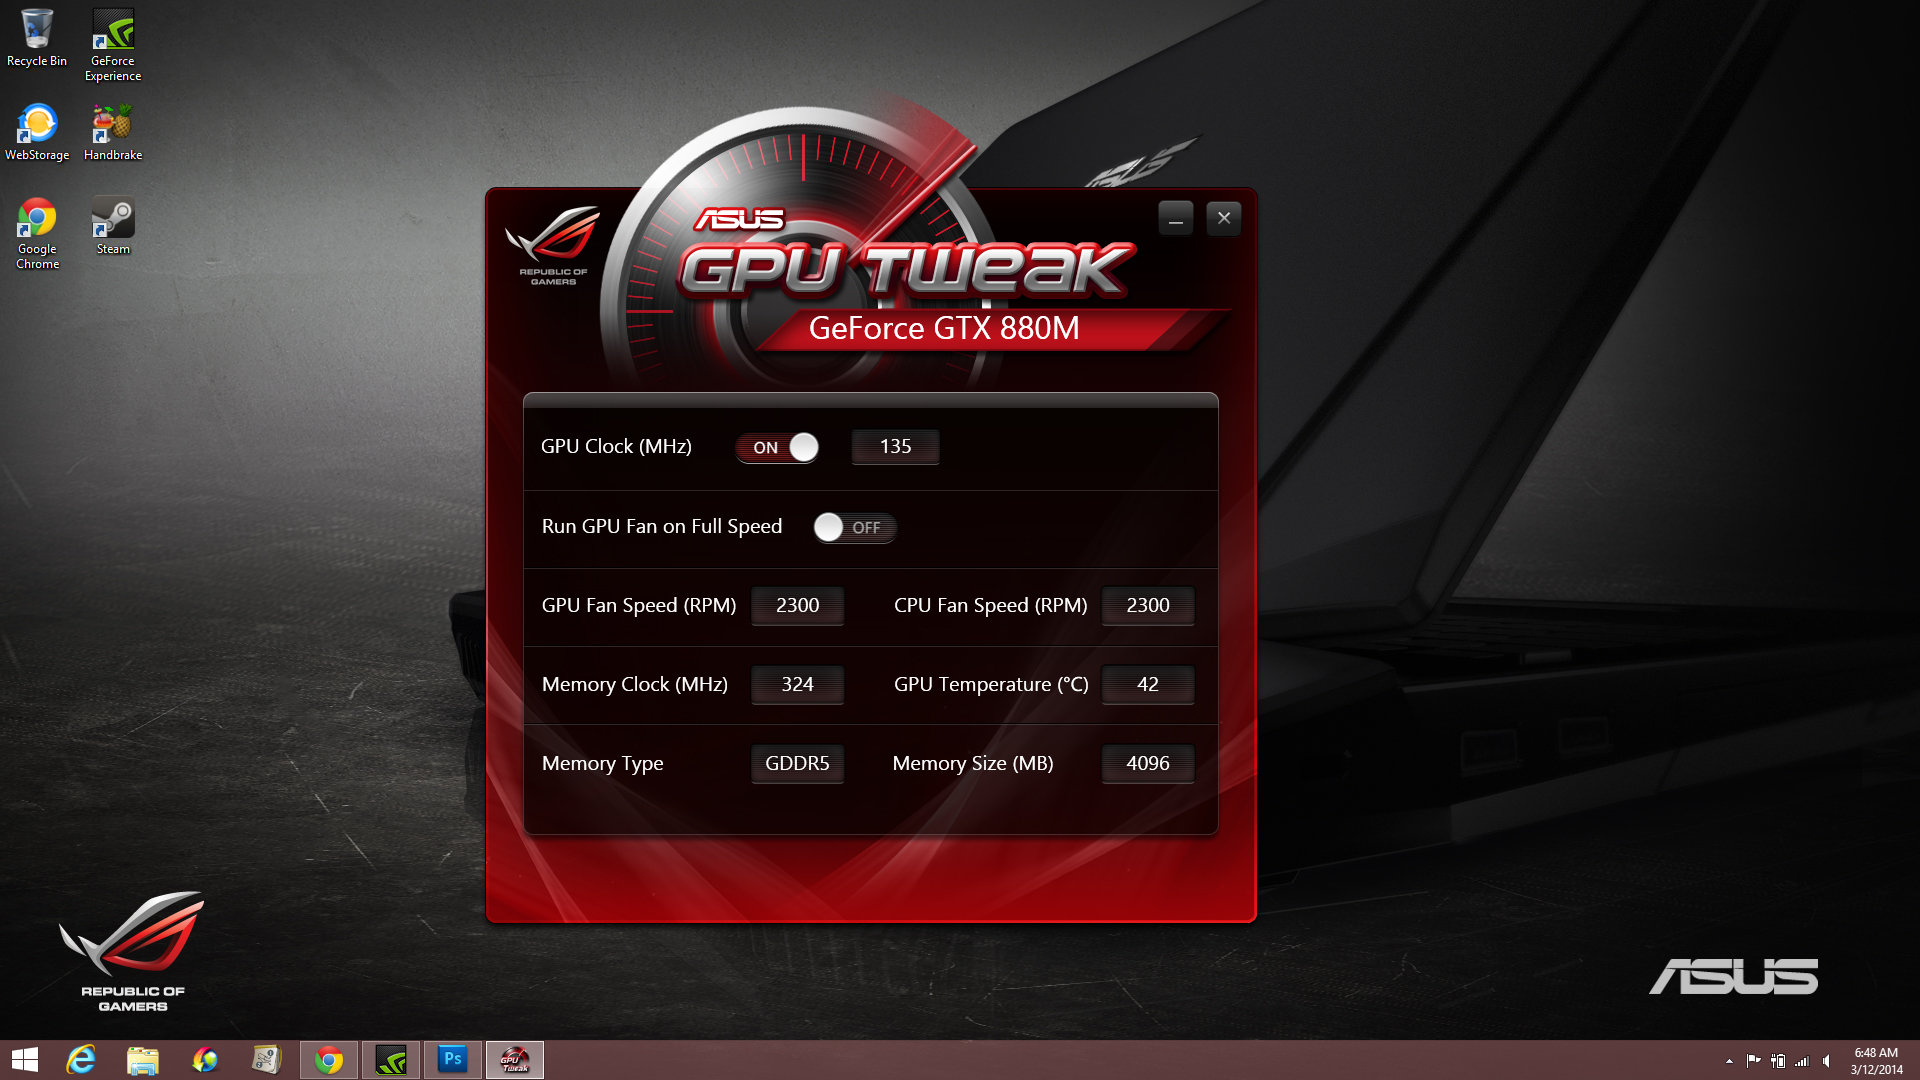 Asus' GPU Tweak software